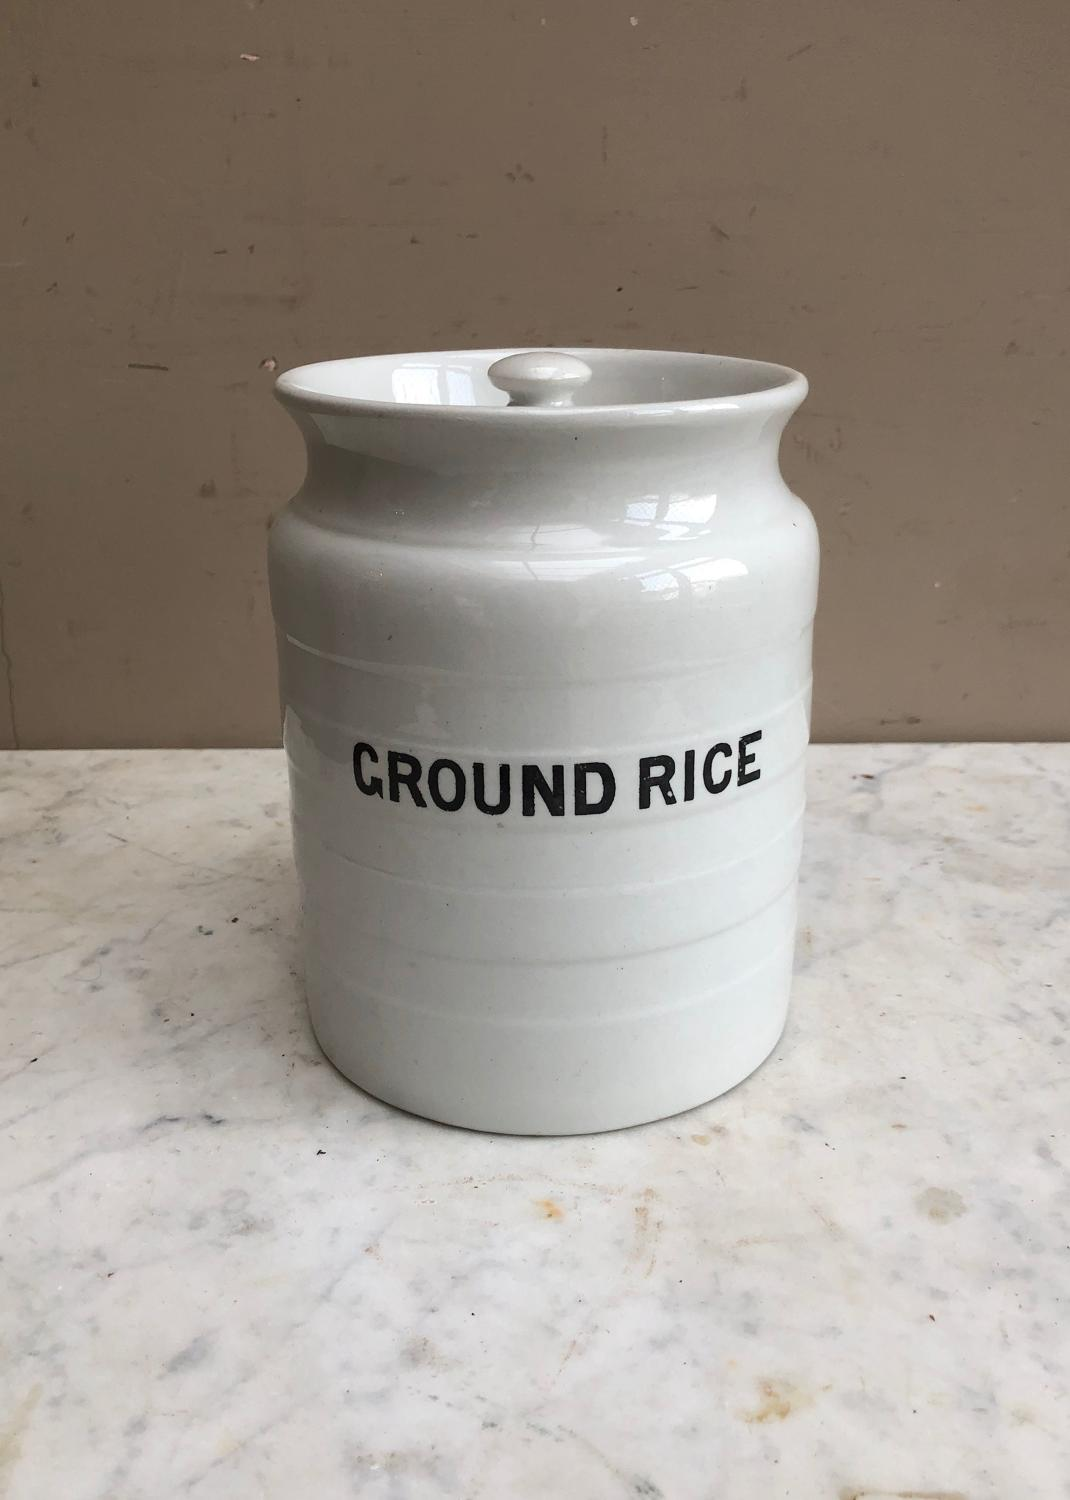 Early 20thC White Banded Kitchen Storage Jar with Lid - Ground Rice